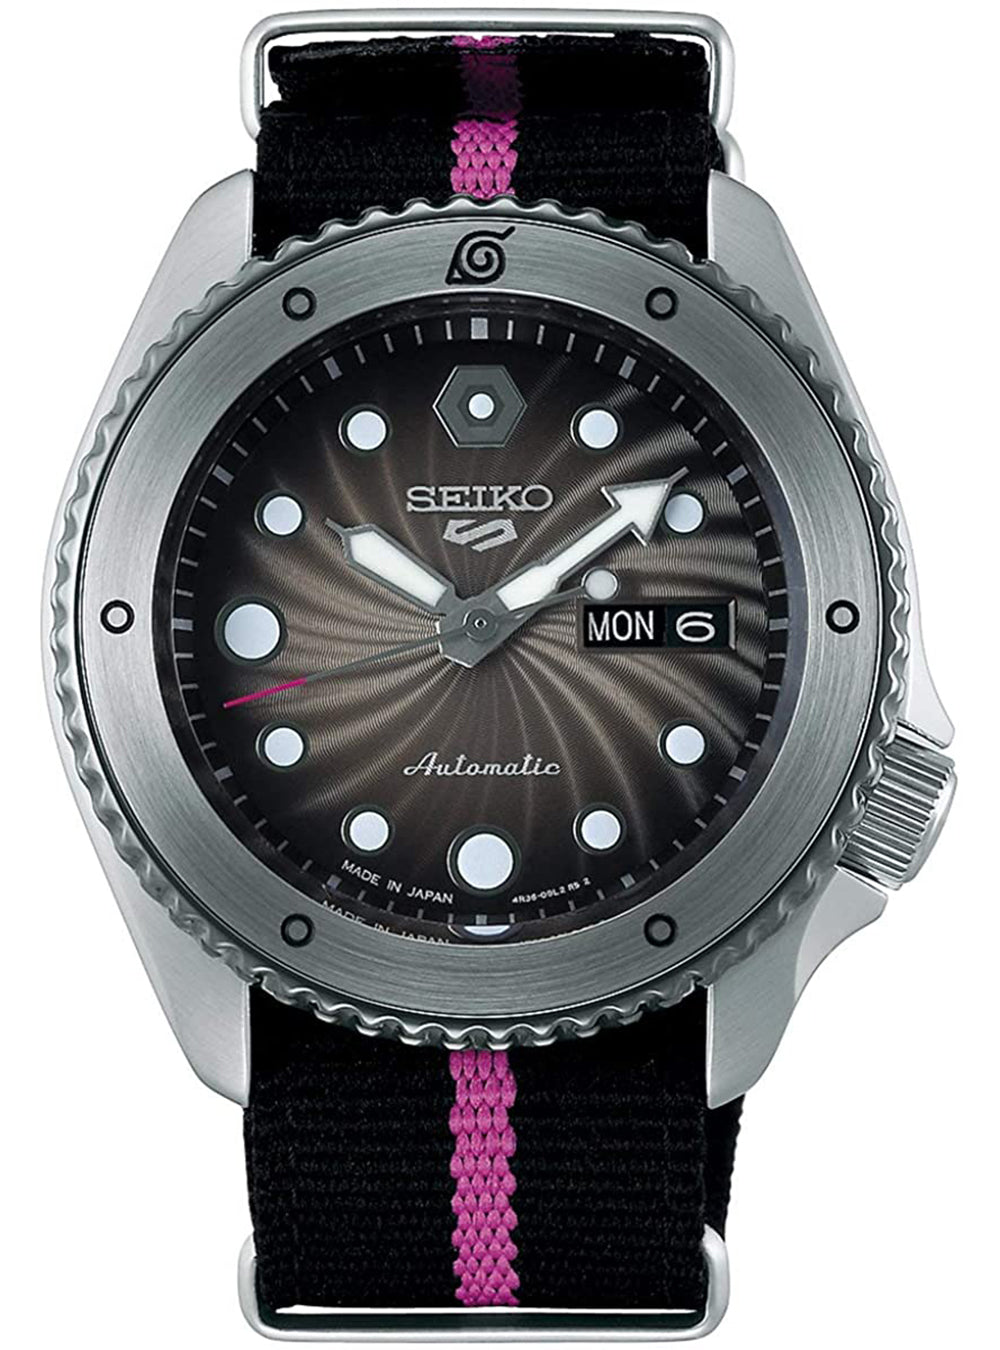 SEIKO 5 SPORTS NARUTO & BORUTO LIMITED EDITION BORUTO UZUMAKI MODEL SBSA087 MADE IN JAPAN JDM